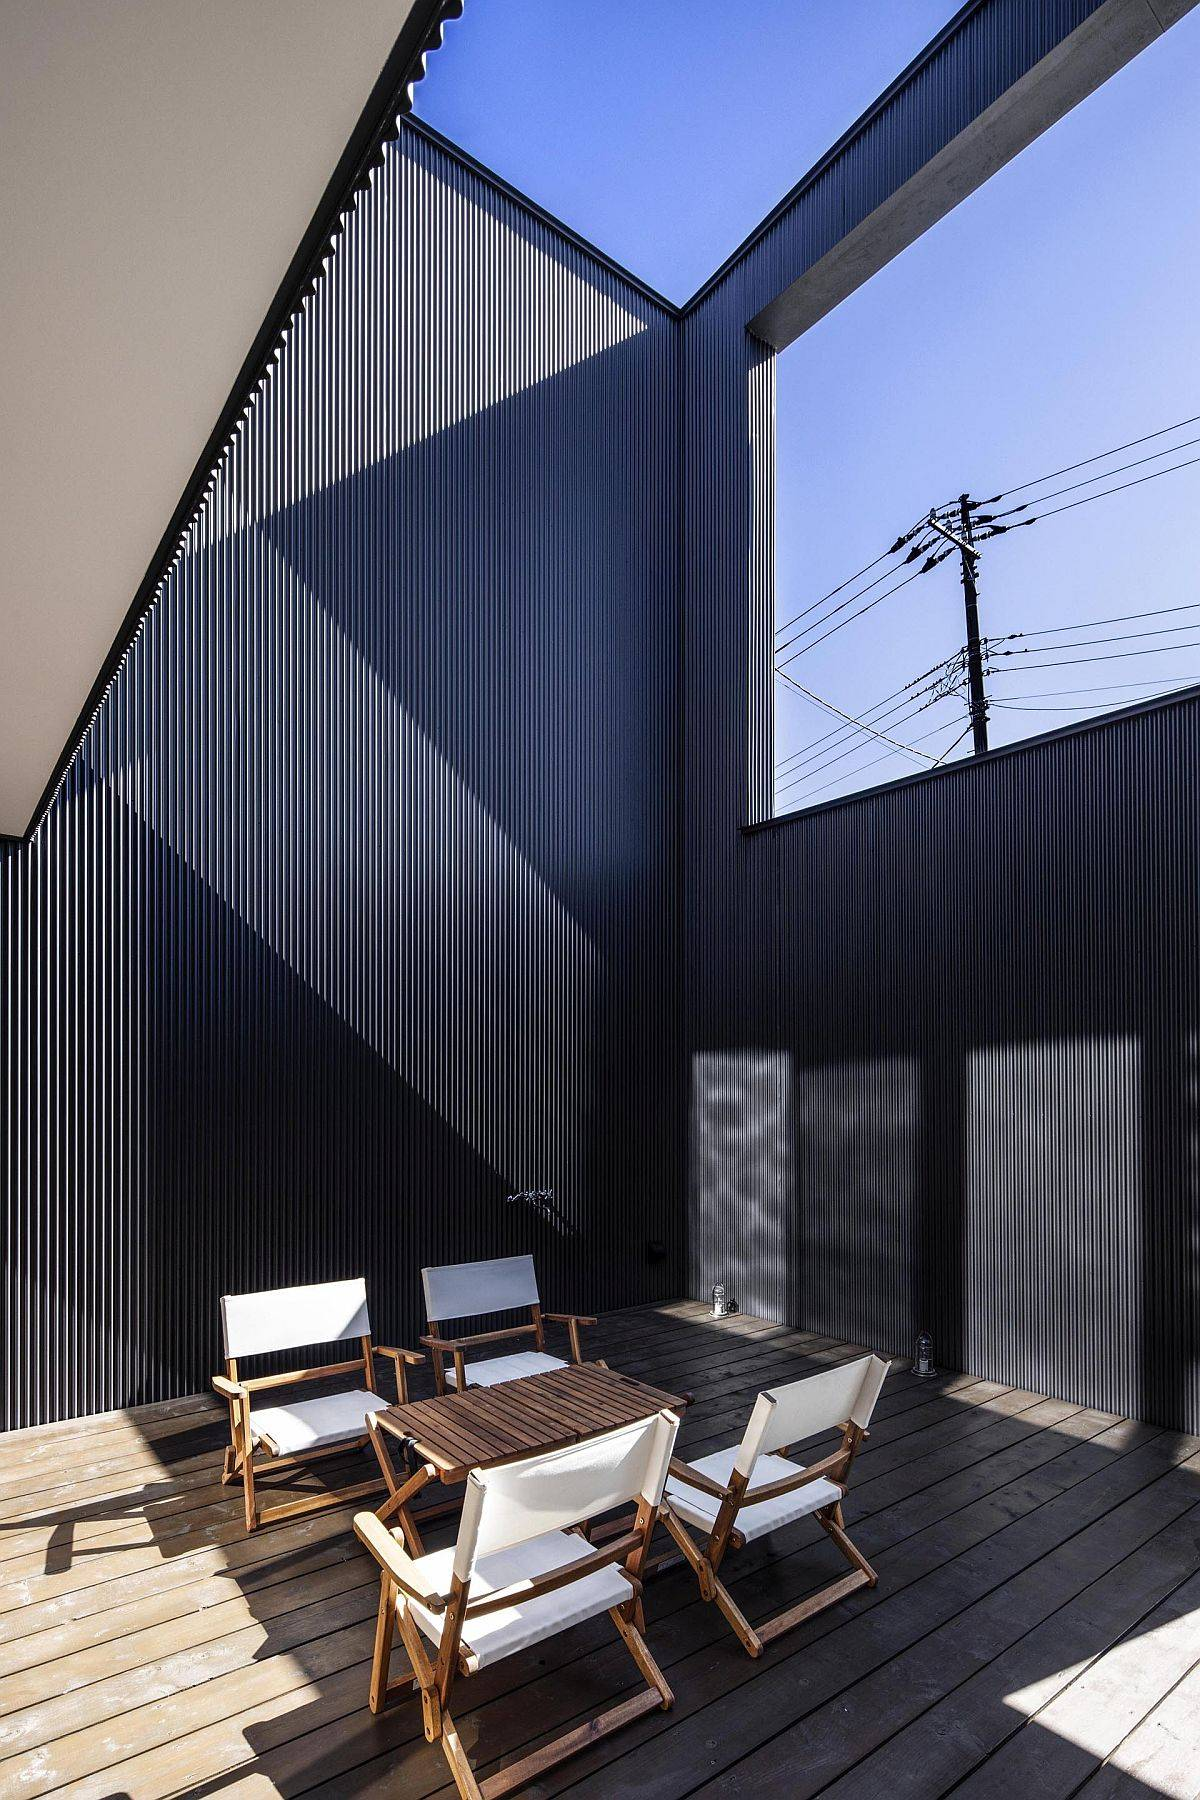 Well-lit and stylish gray upper level deck of the Japanese home